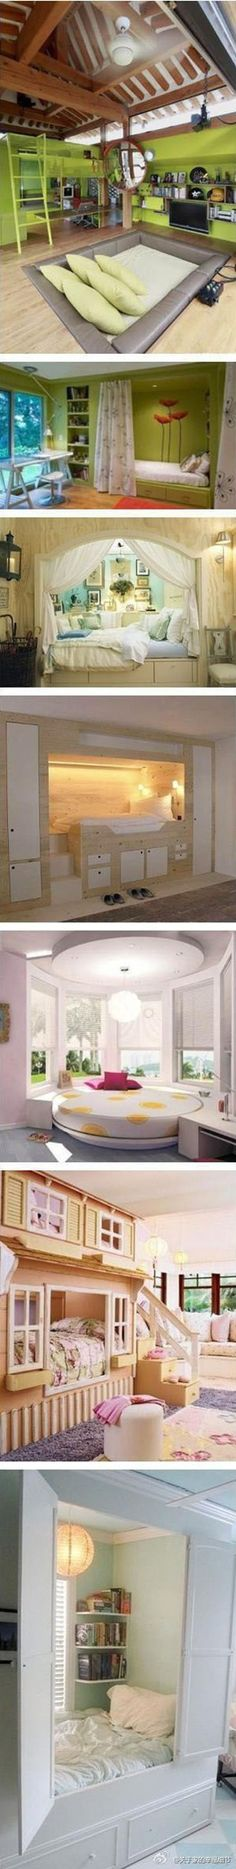 these are some great ideas for unusual bedrooms!  i love it